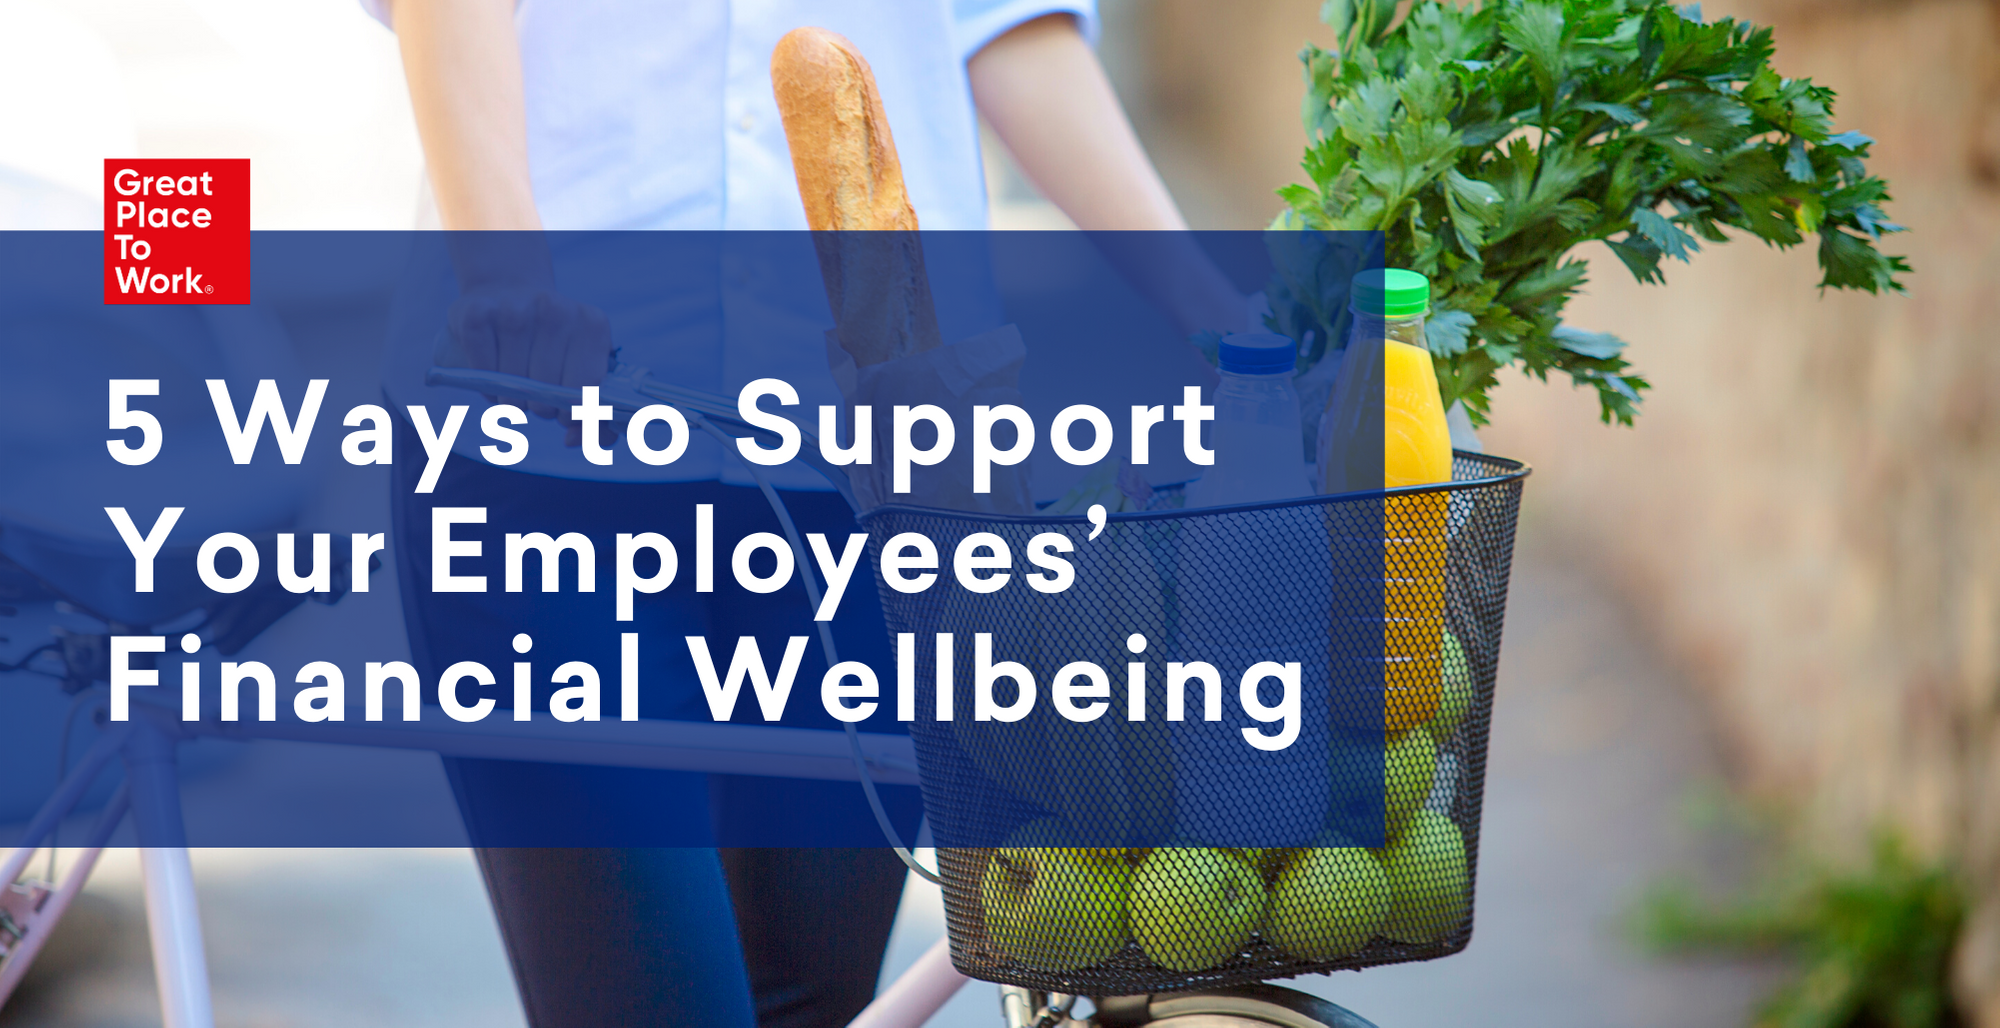 5 Ways to Support Your Employees' Financial Wellbeing